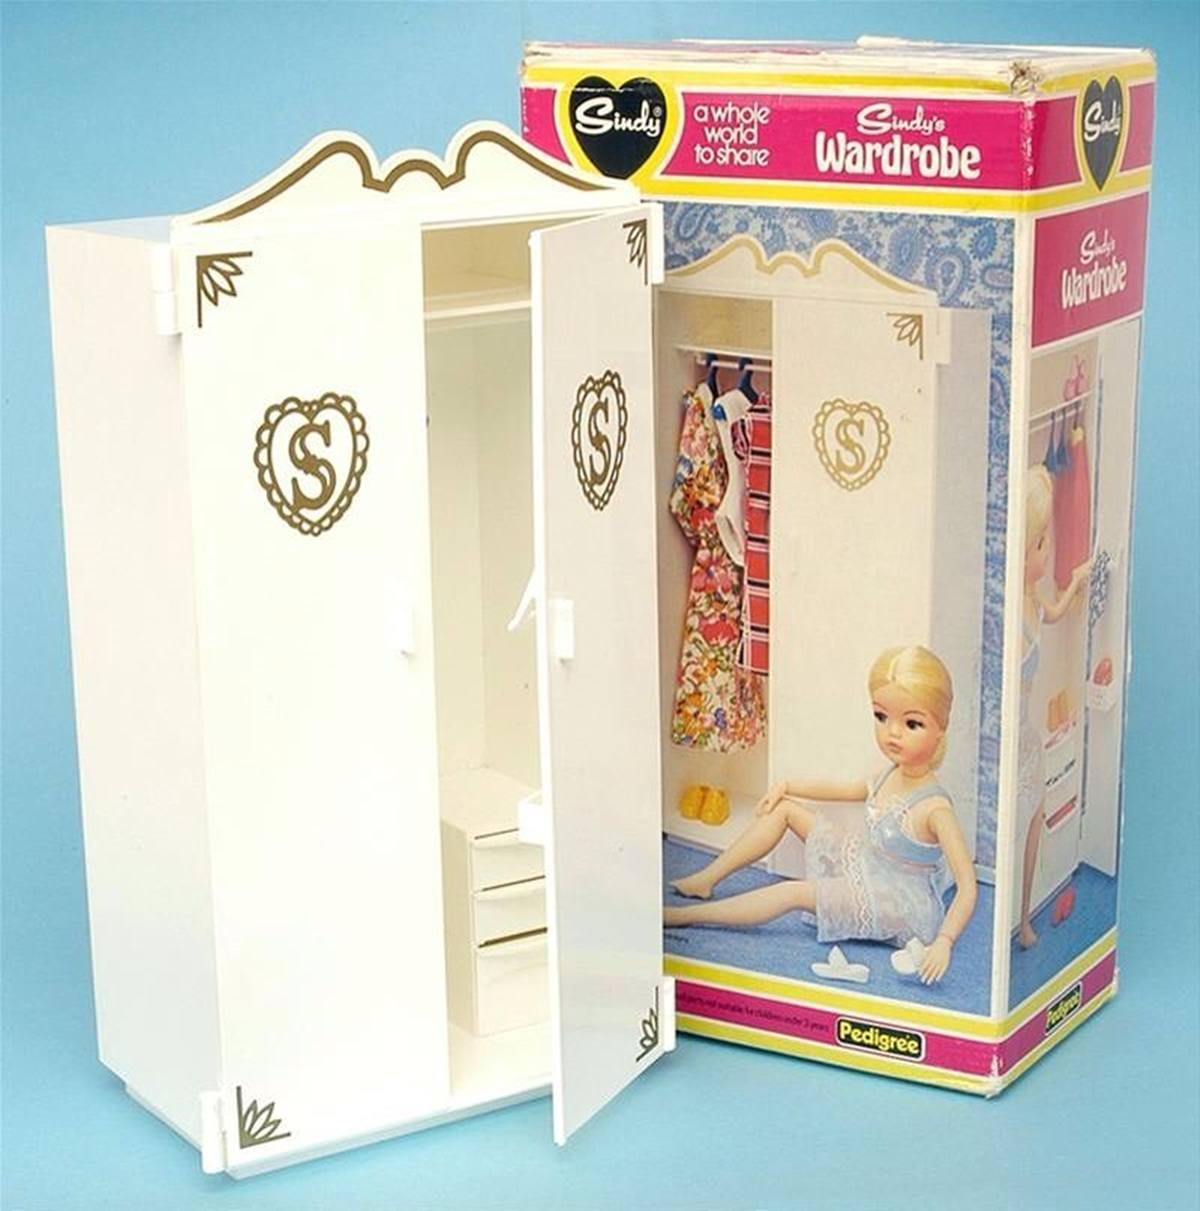 12 4 12 Toys All 80s Girls Wanted Santa To Leave Them!